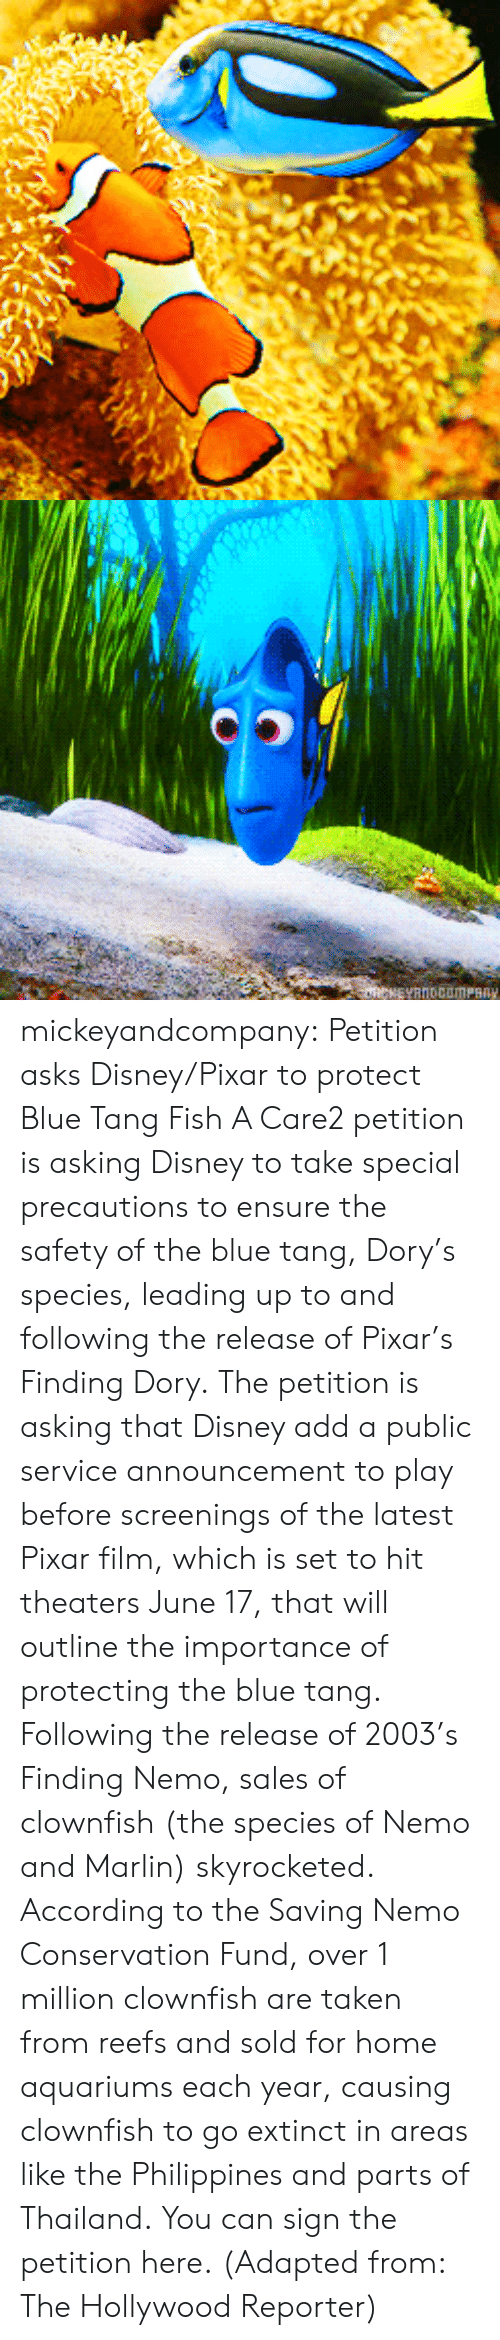 Marlin: mickeyandcompany:  Petition asks Disney/Pixar to protect Blue Tang Fish A Care2 petition is asking Disney to take special precautions to ensure the safety of the blue tang, Dory's species, leading up to and following the release of Pixar's Finding Dory. The petition is asking that Disney add a public service announcement to play before screenings of the latest Pixar film, which is set to hit theaters June 17, that will outline the importance of protecting the blue tang. Following the release of 2003's Finding Nemo, sales of clownfish (the species of Nemo and Marlin) skyrocketed. According to the Saving Nemo Conservation Fund, over 1 million clownfish are taken from reefs and sold for home aquariums each year, causing clownfish to go extinct in areas like the Philippines and parts of Thailand. You can sign the petition here. (Adapted from: The Hollywood Reporter)